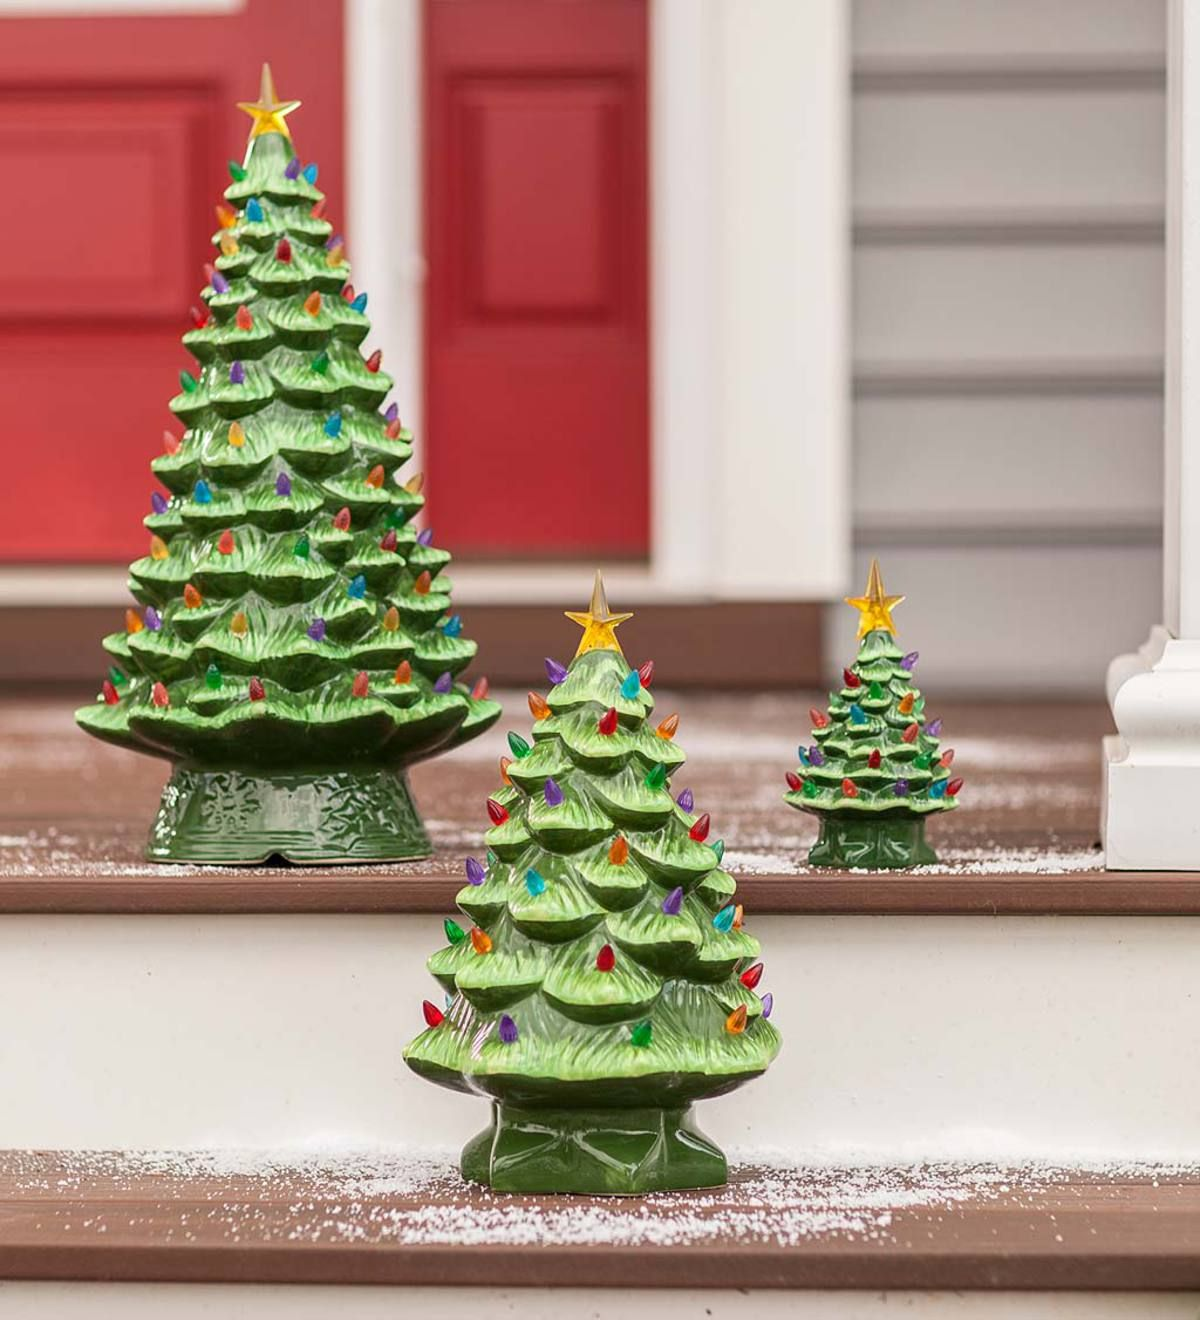 Just like you remember! Our Lighted Ceramic Christmas Tree is a ...